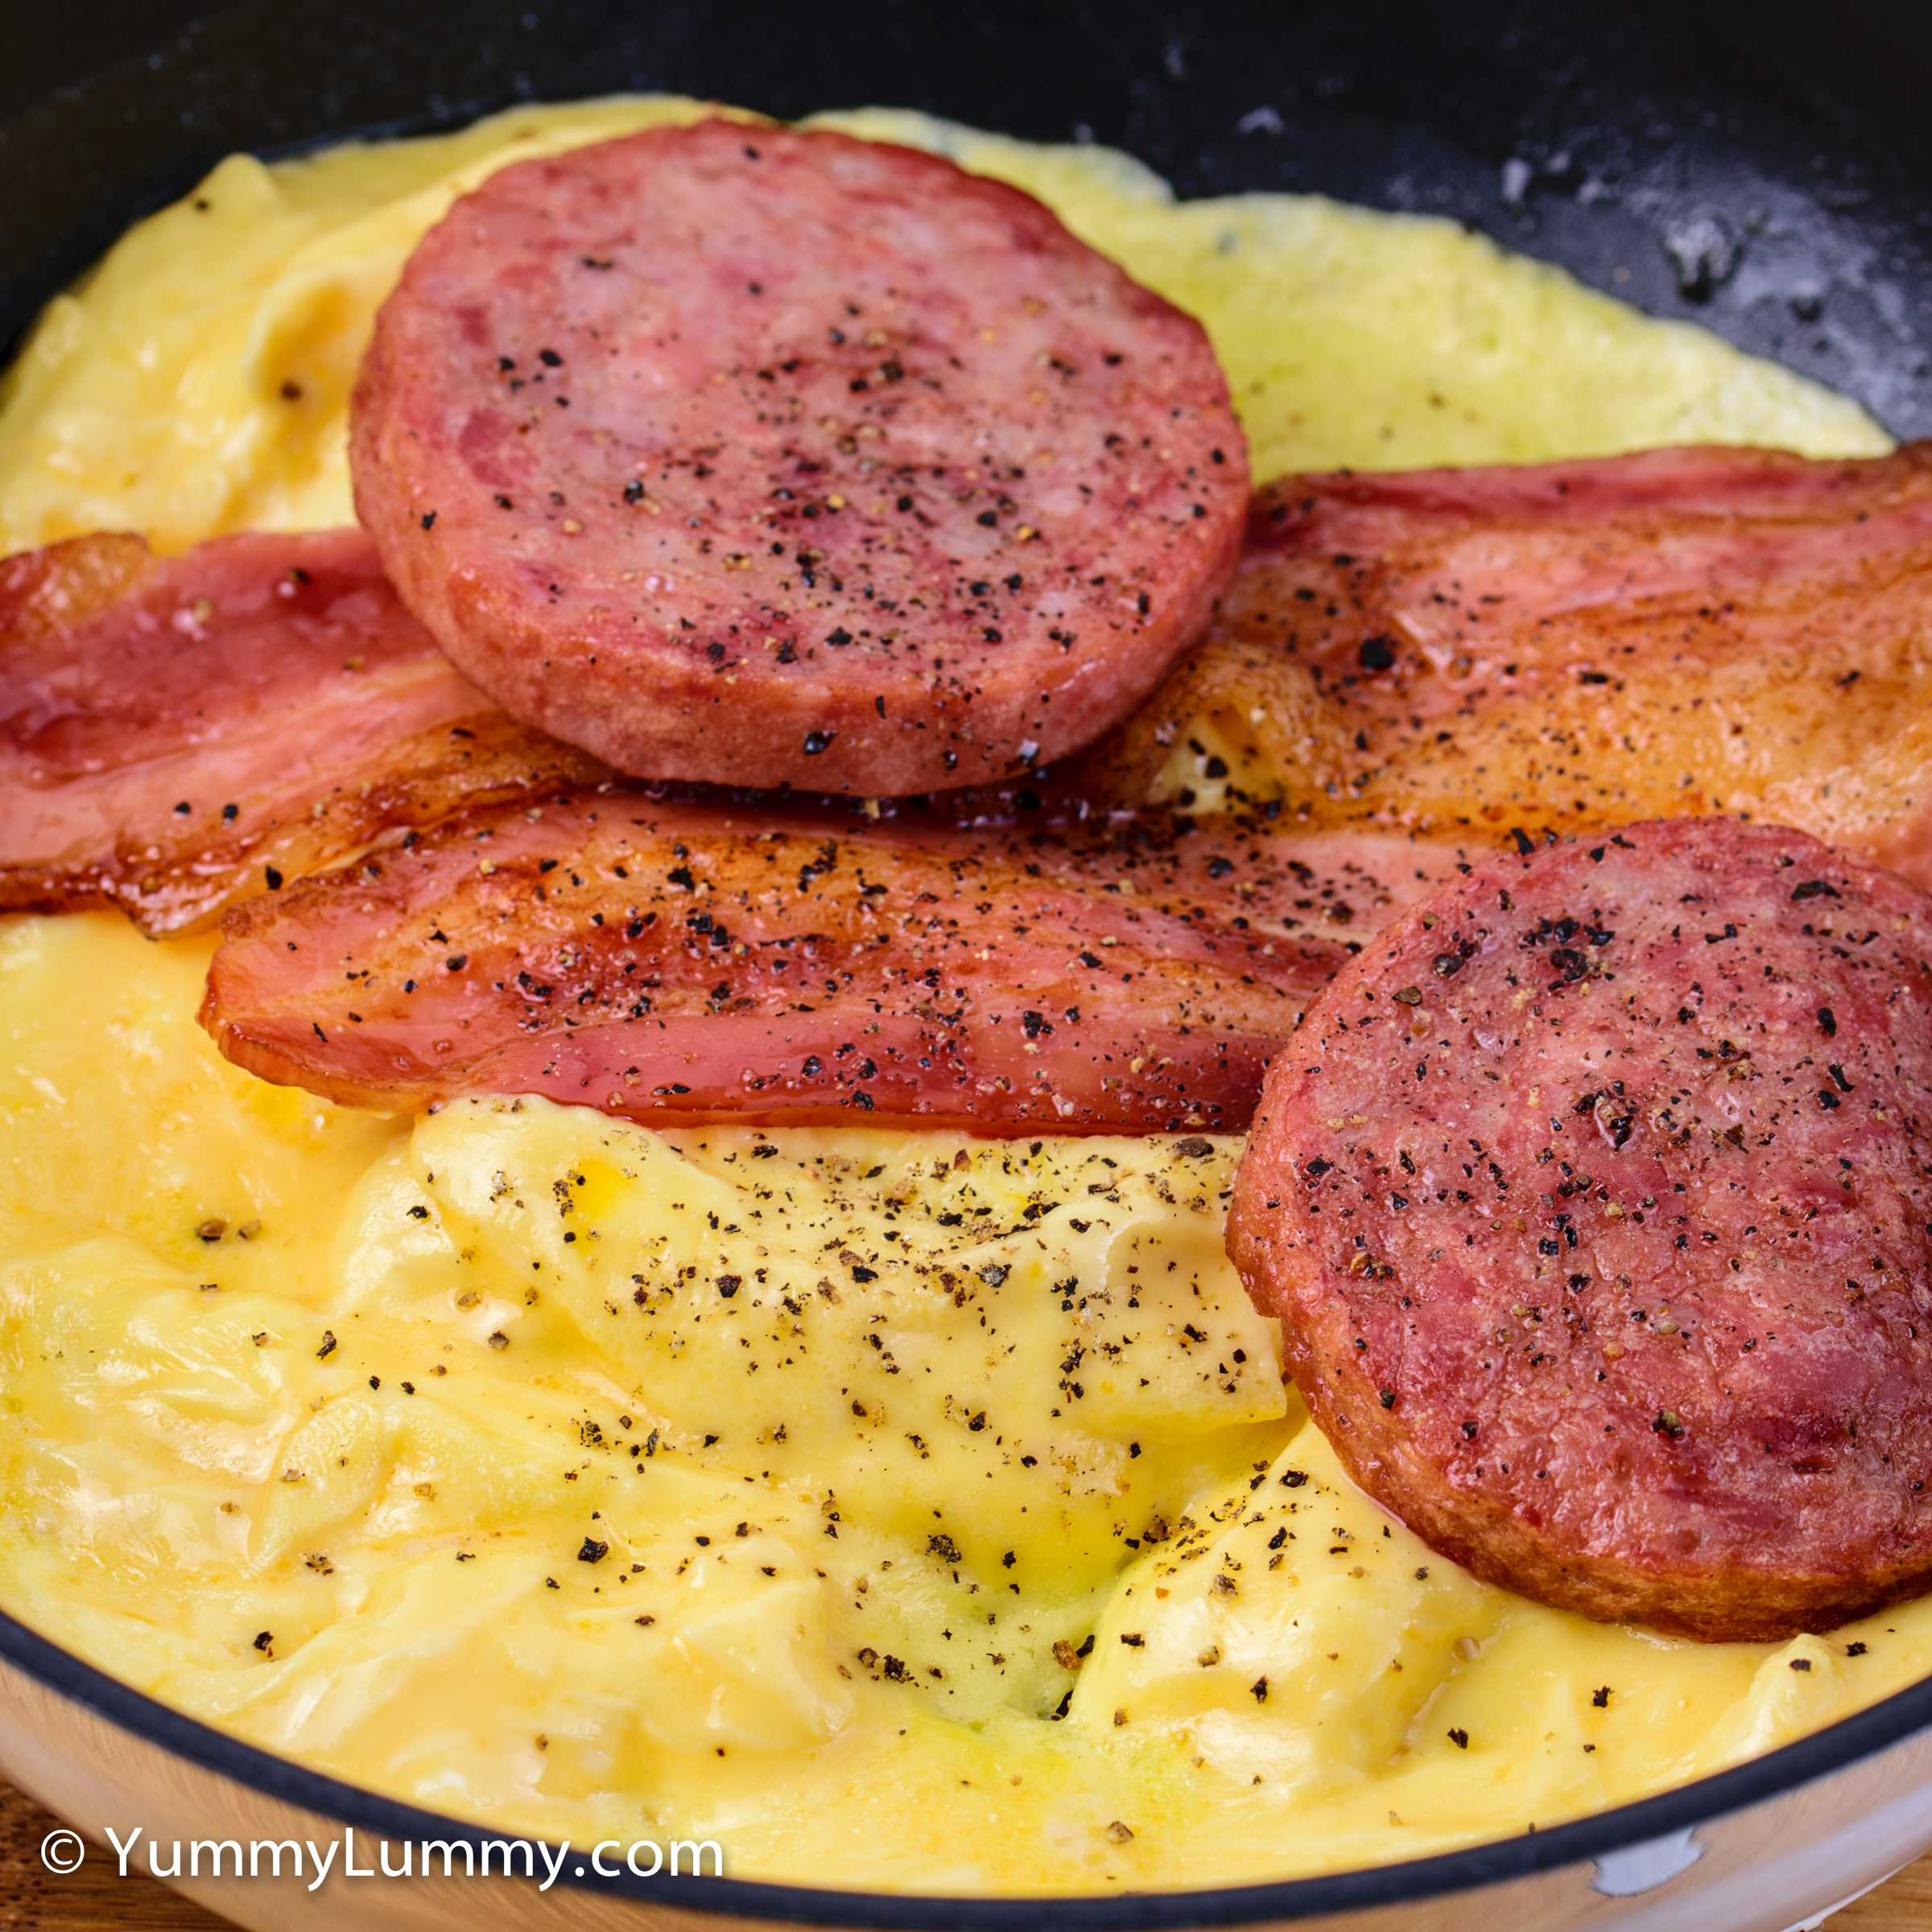 Happy hump day Canberra. Scrambled eggs with bacon and Strasburg sausage for breakfast.